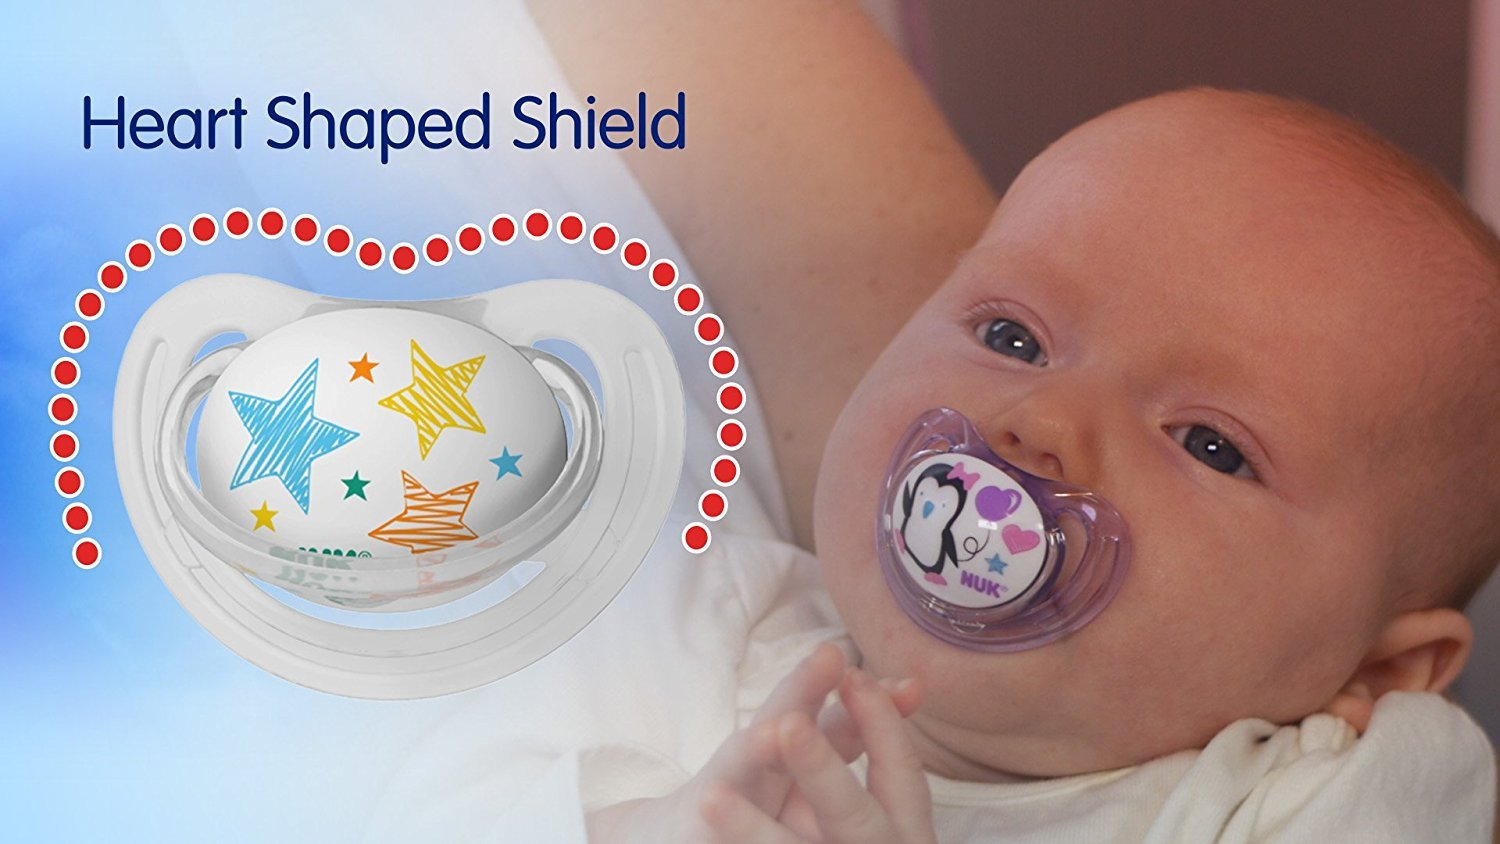 Size 1 Nuk Advanced Clear Shield Orthodontic Pacifier Assorted Colors